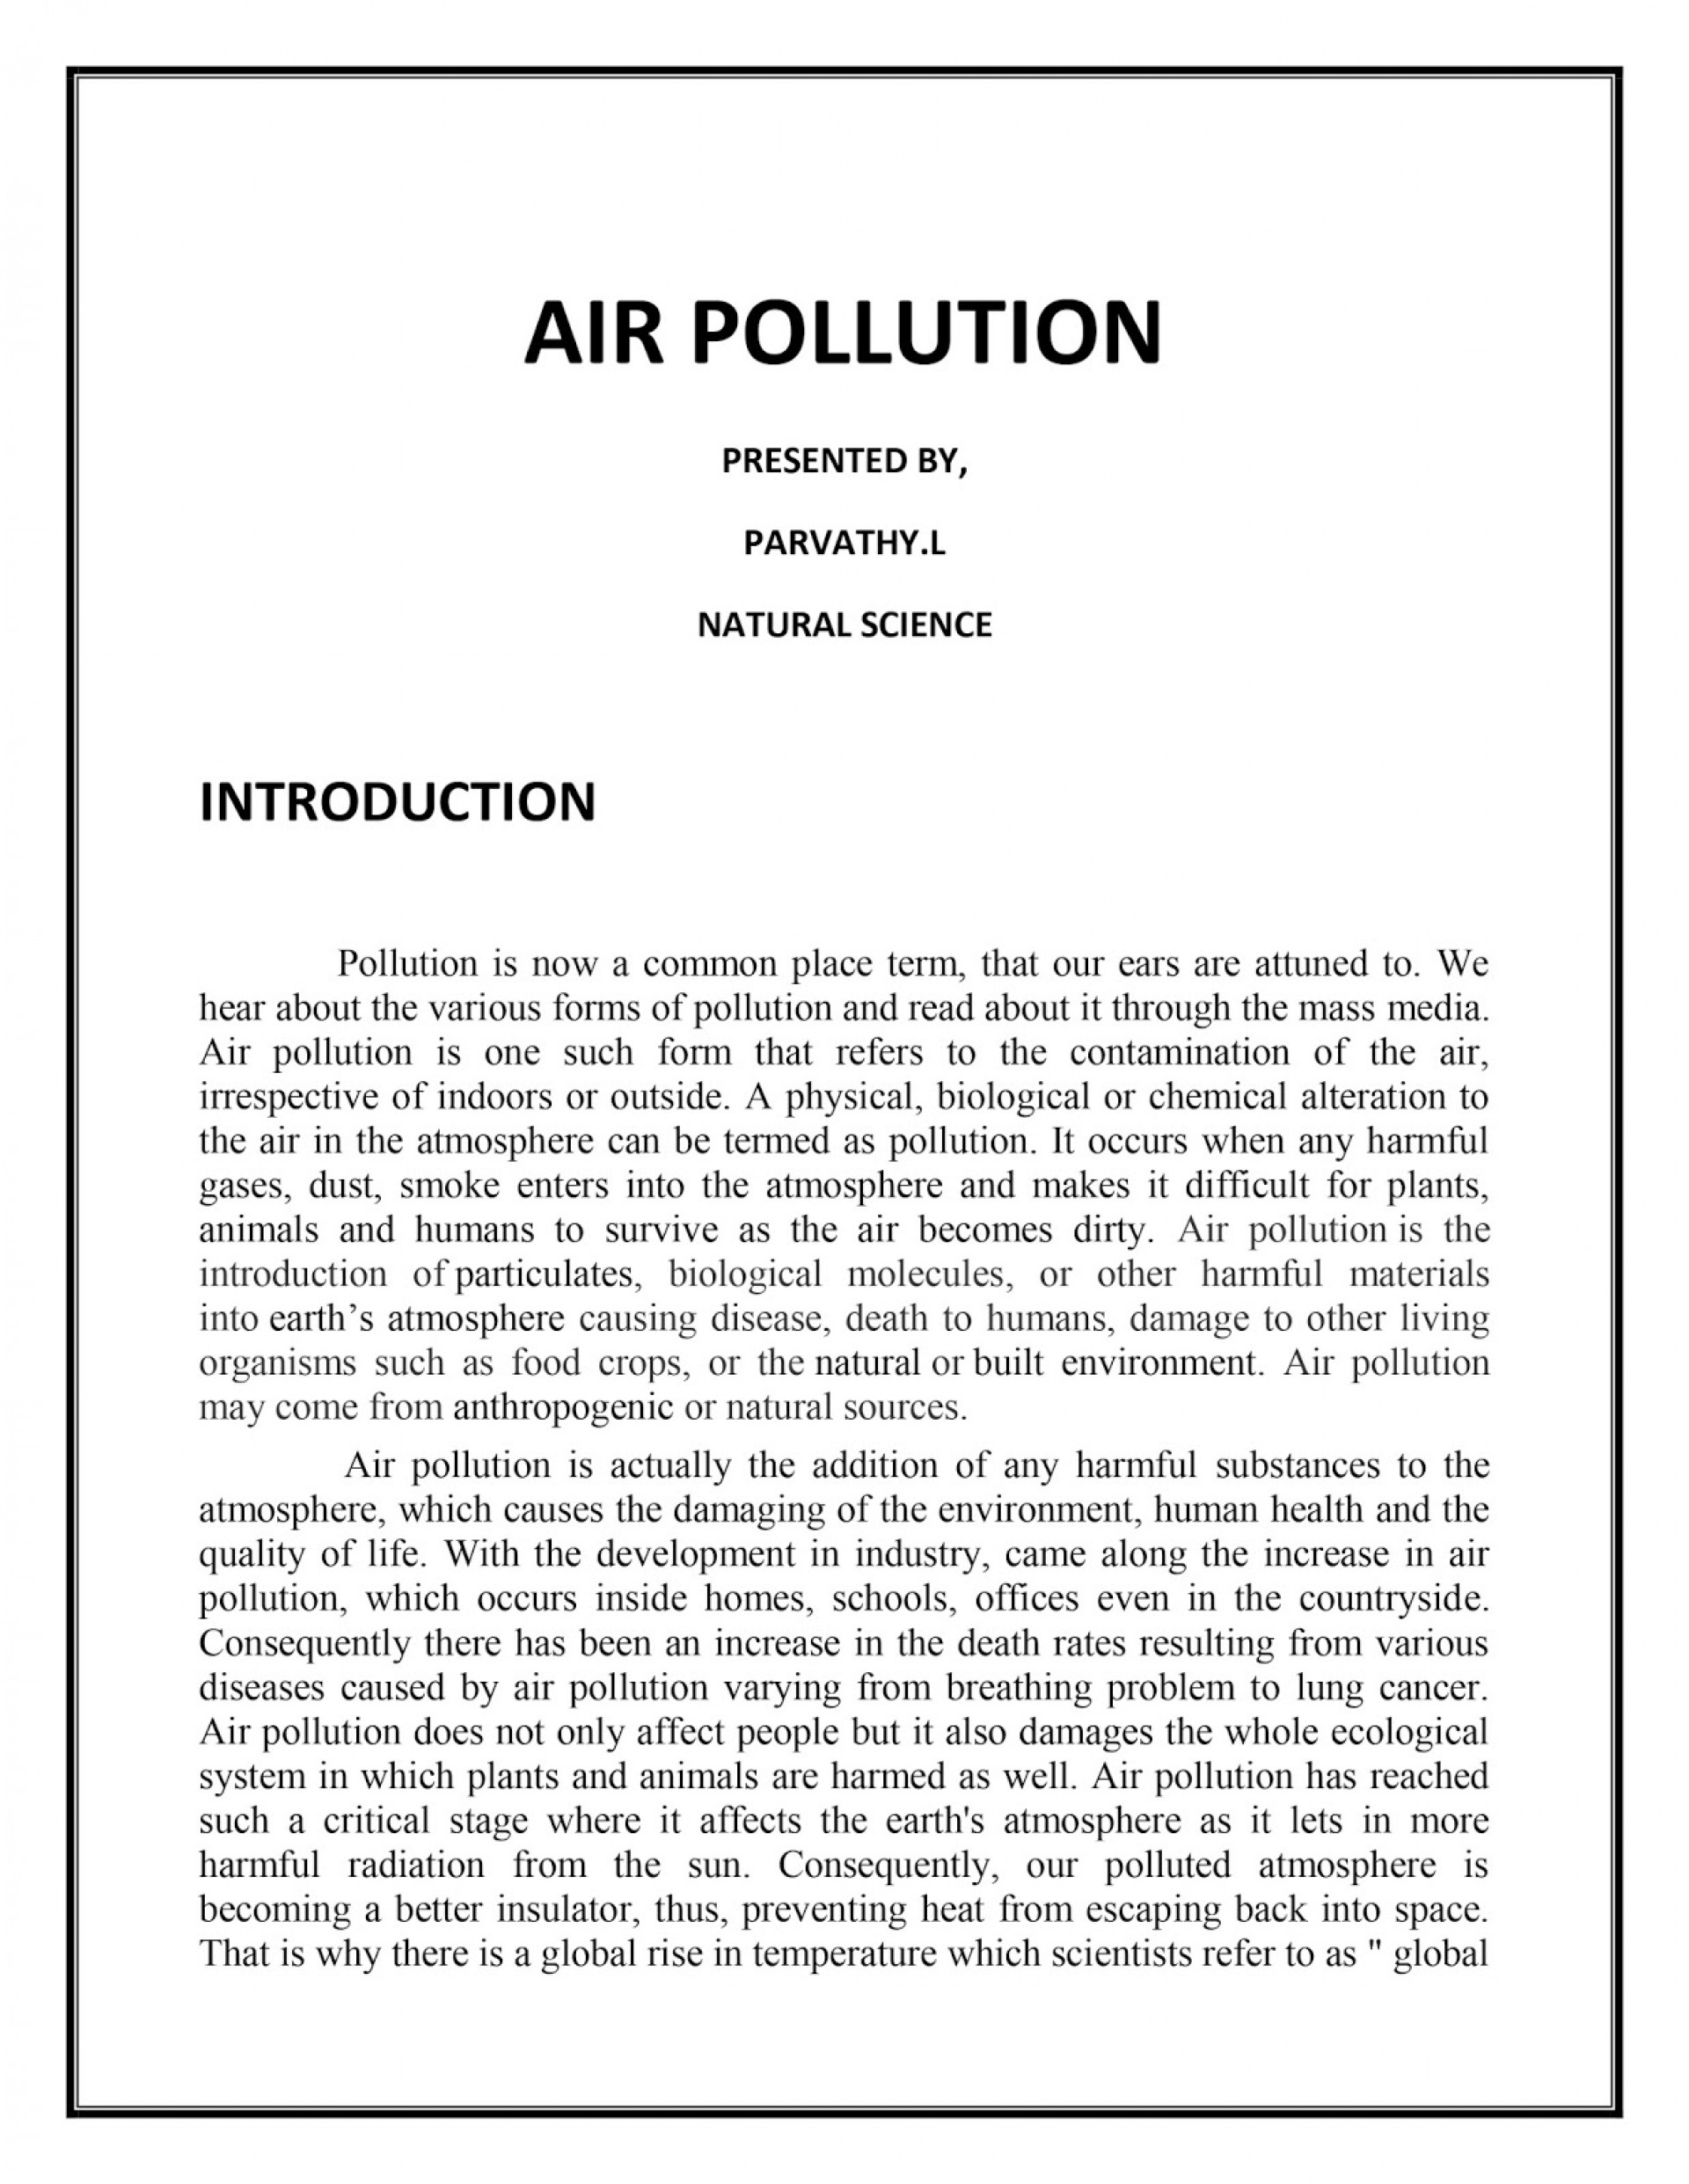 short essay on the environmental pollution in hindi english l    airpollutiononlineassignment essay writing of pollution wondrous  air in english water